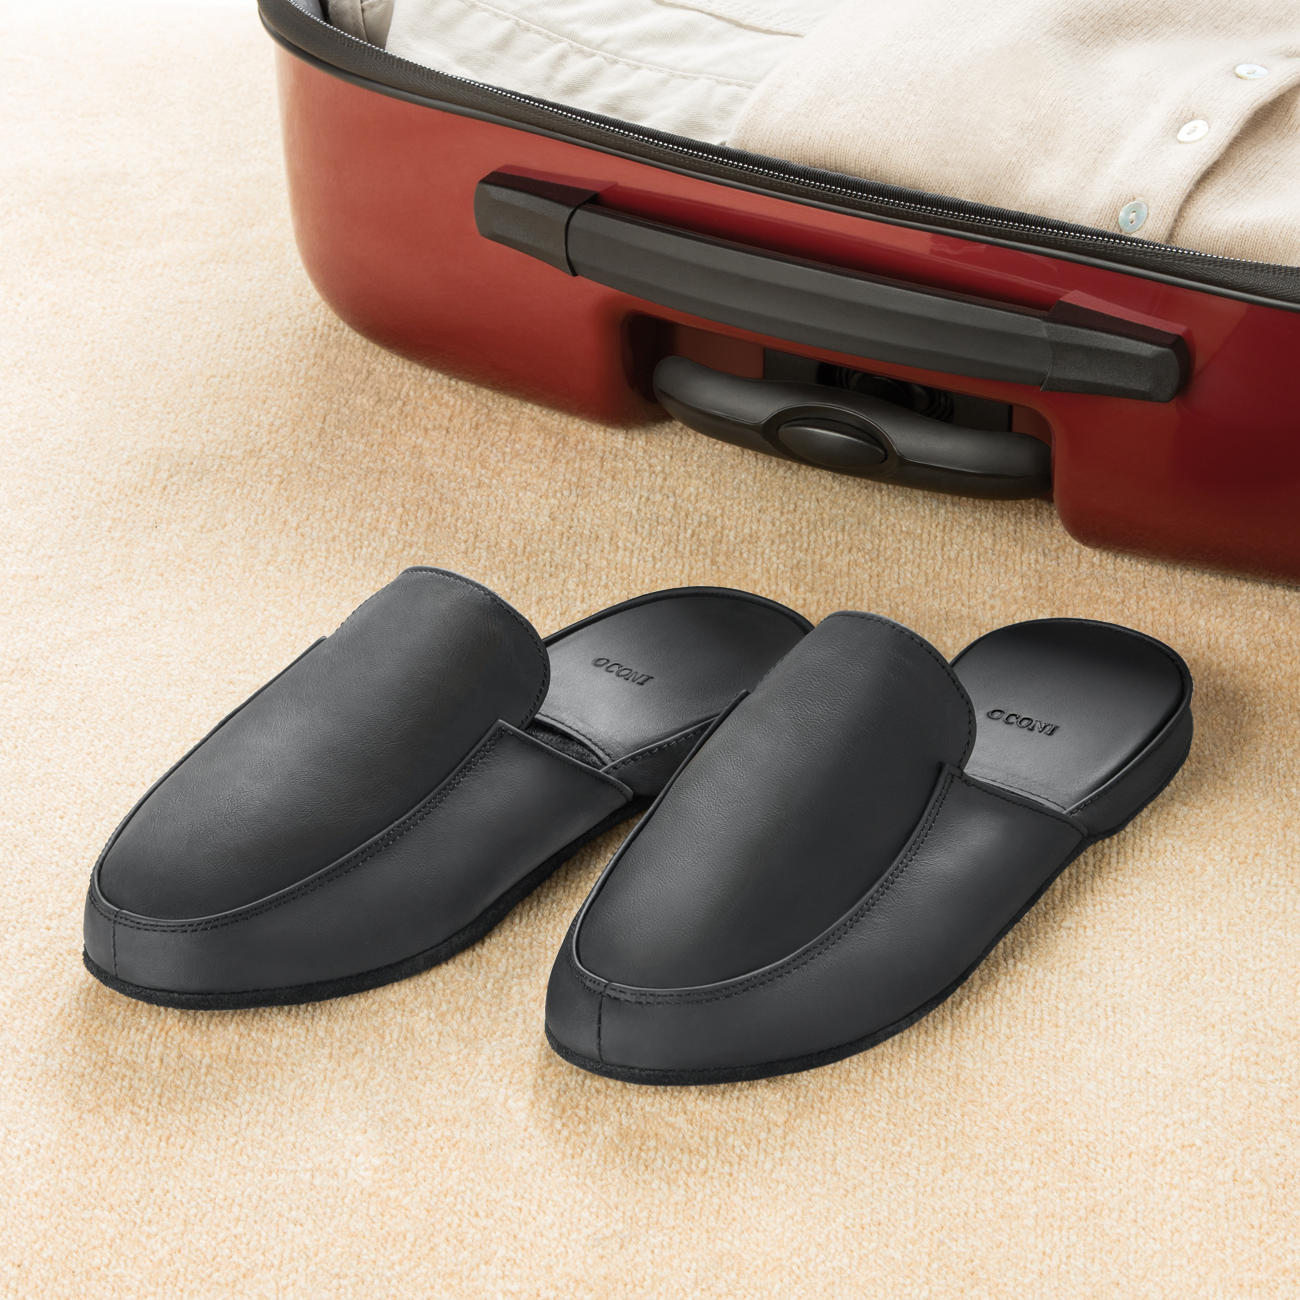 Buy Leather Slippers For Men And Women Online